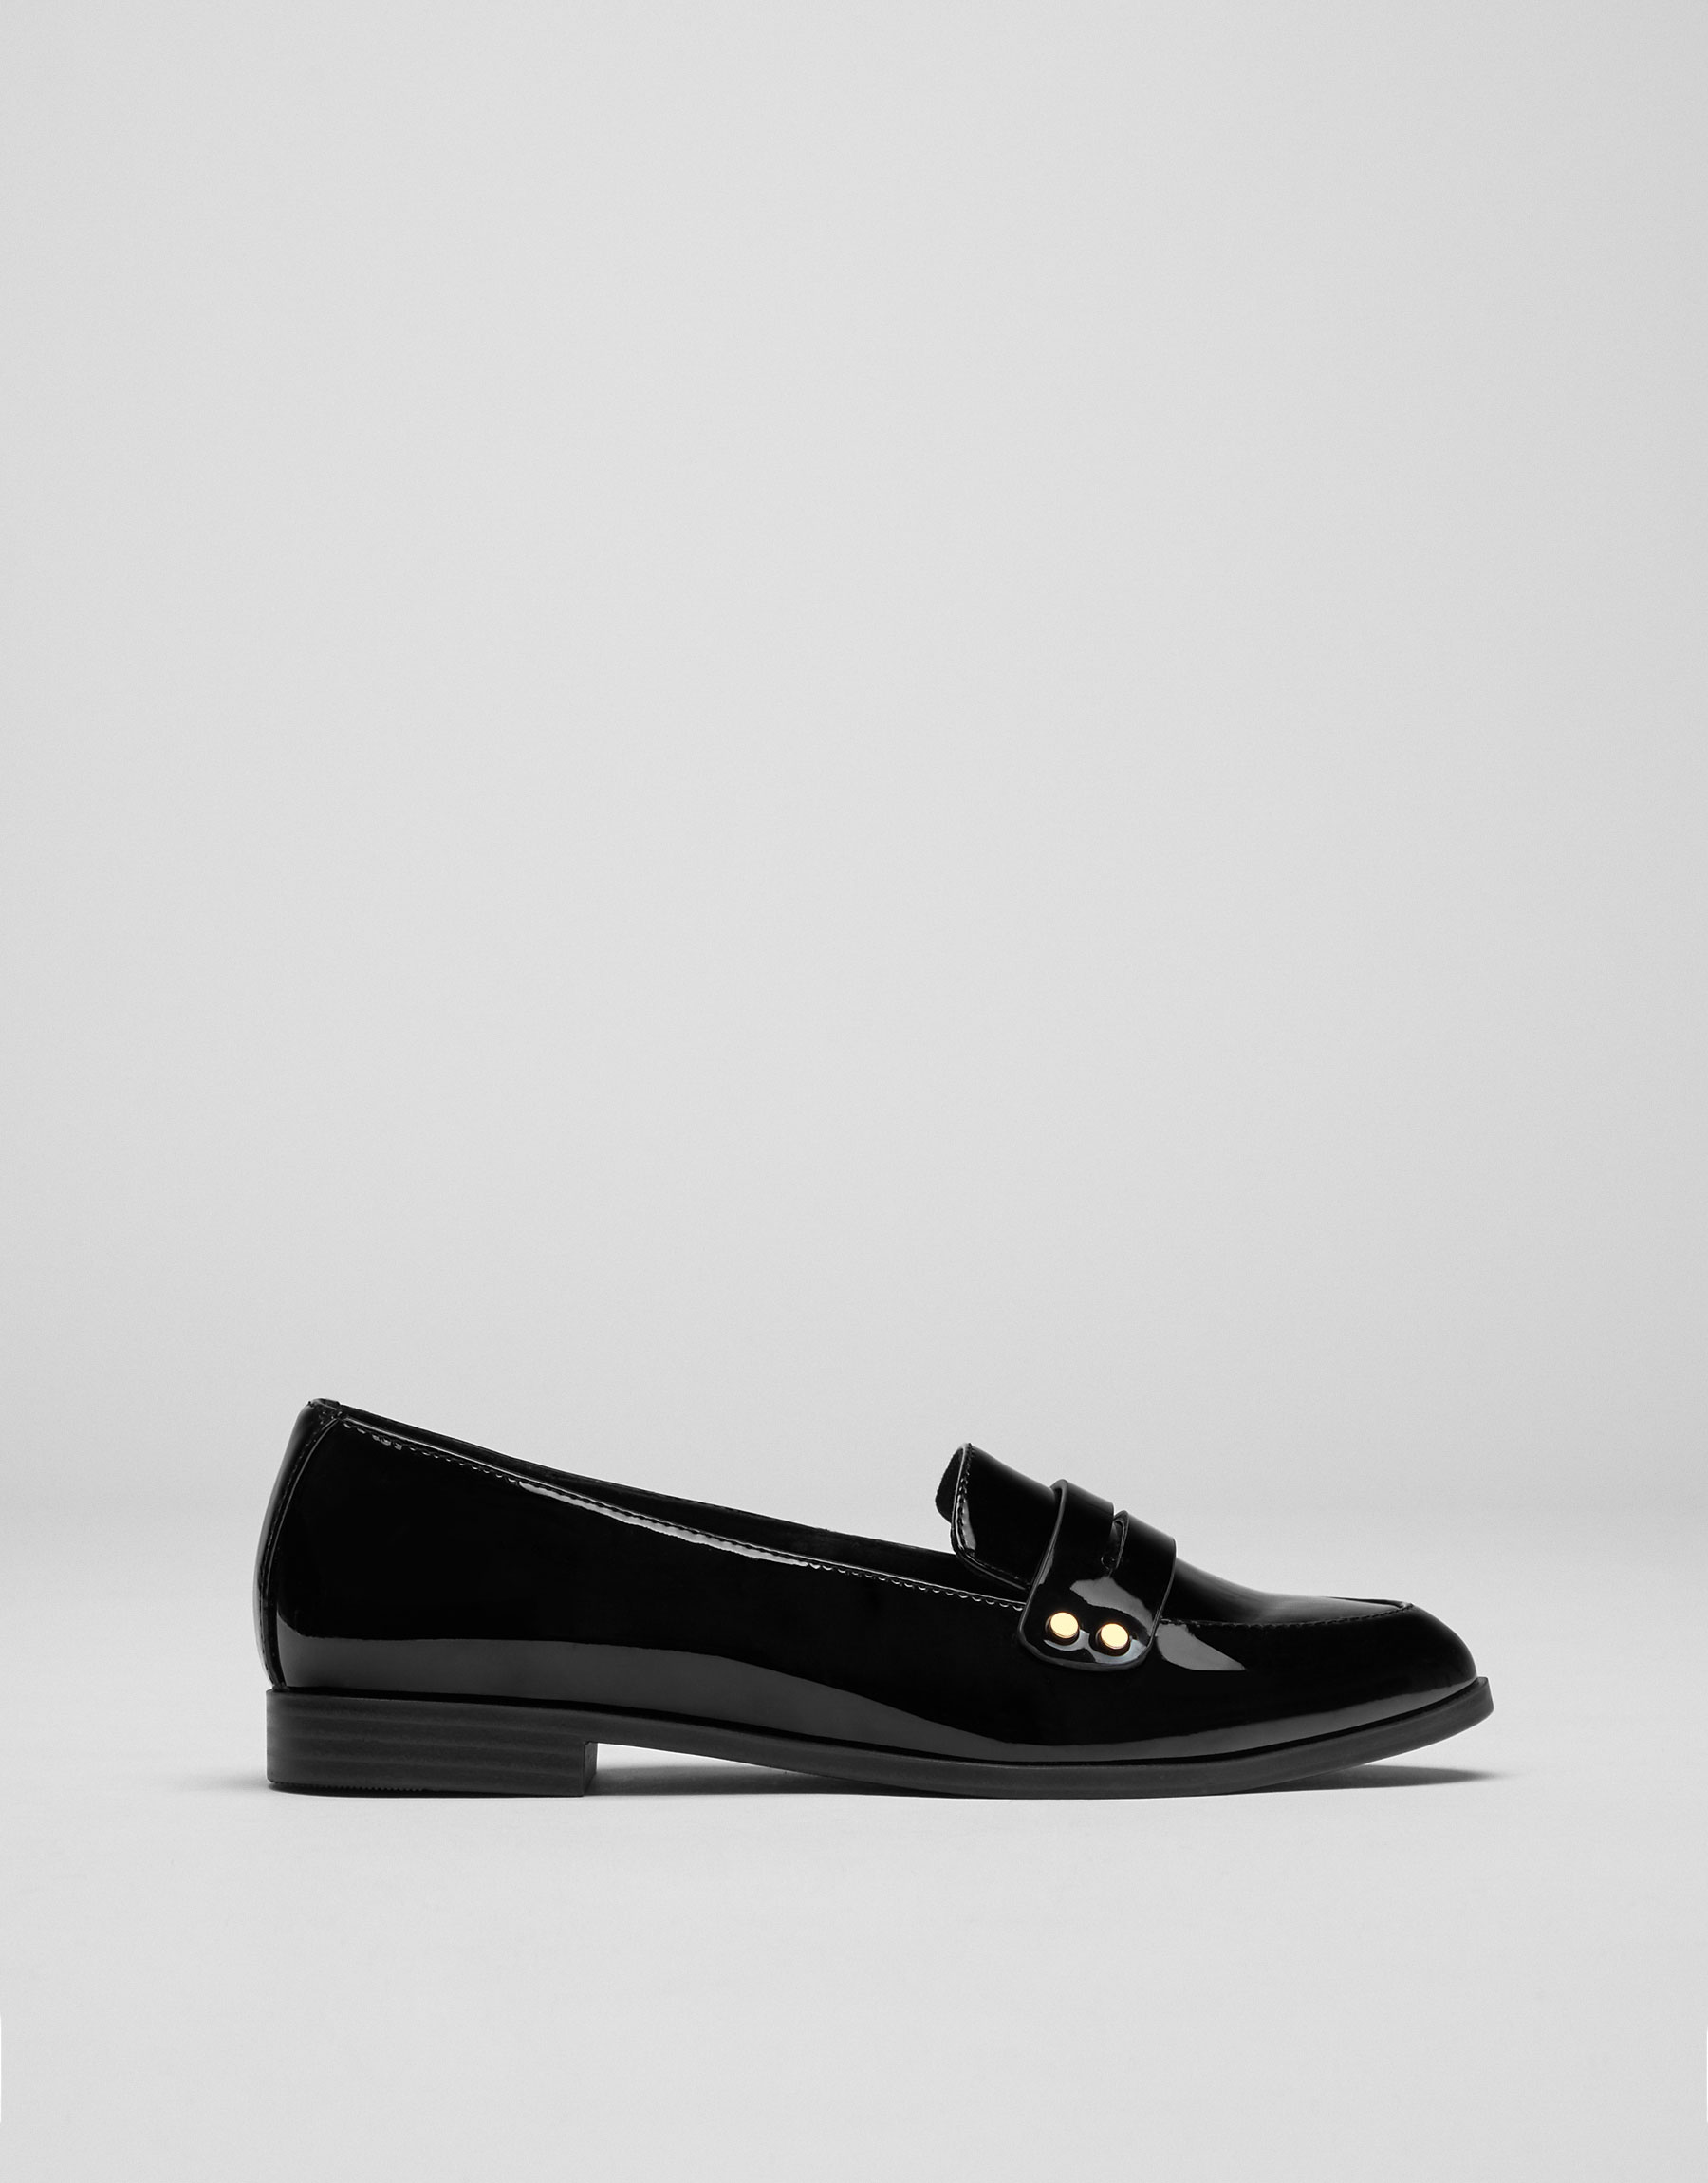 Loafer detalle chatolas